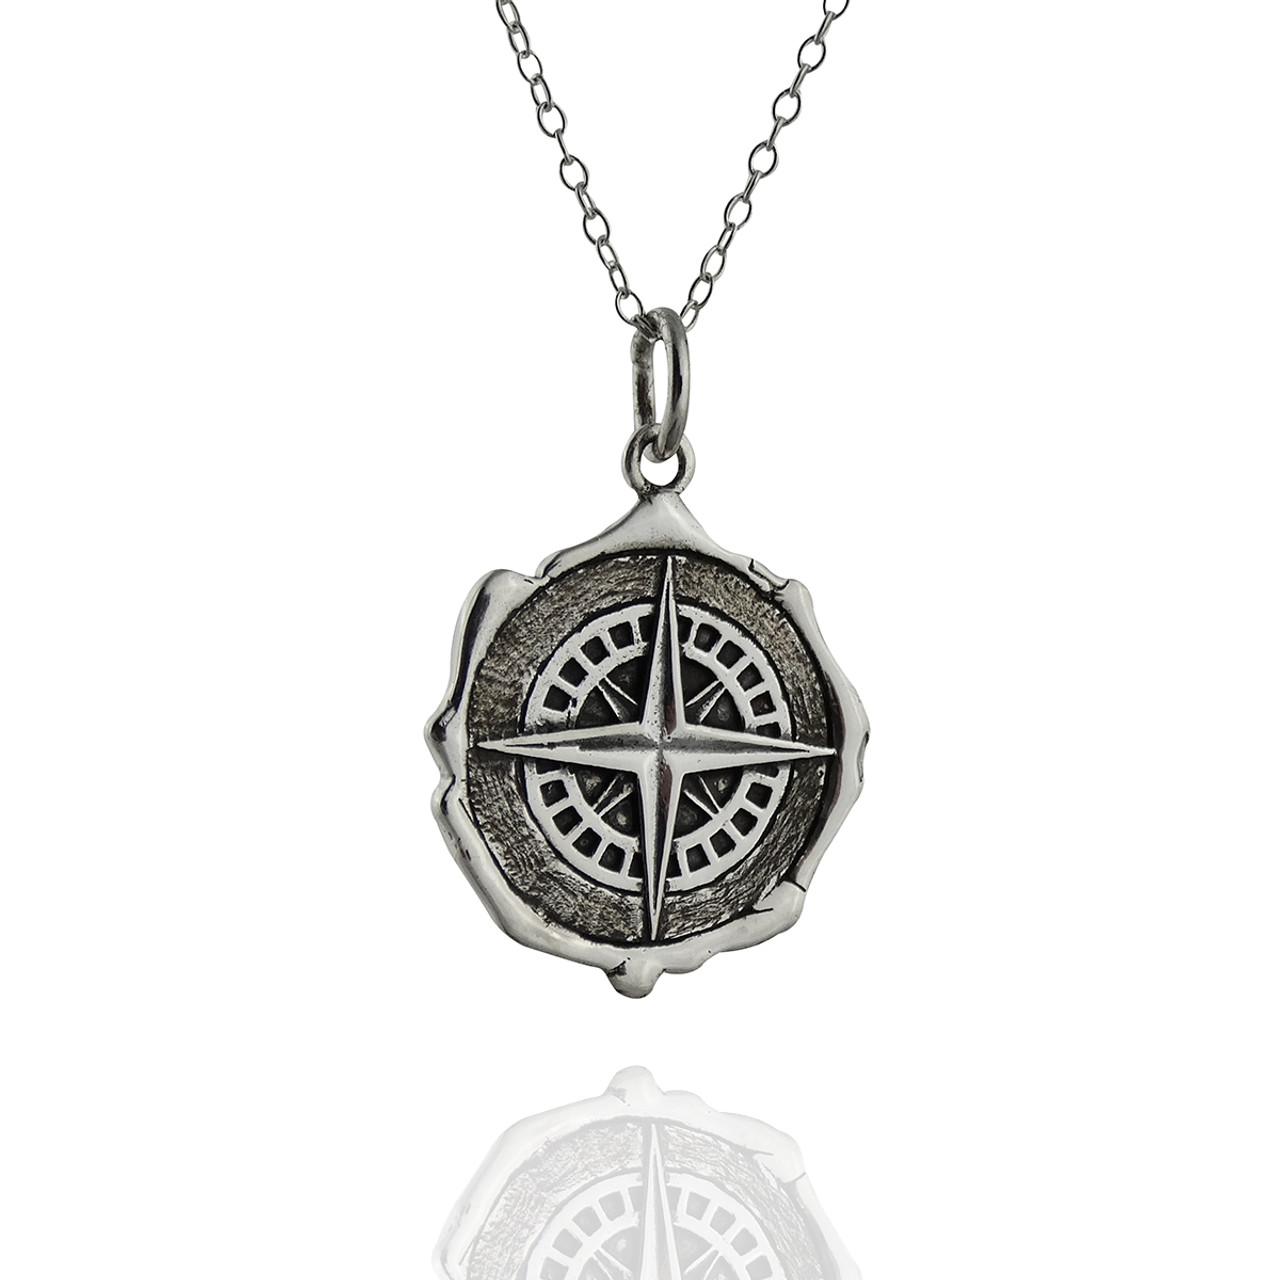 all not wander of the products who gift emporium jrr necklace lotr literary lord compass rings